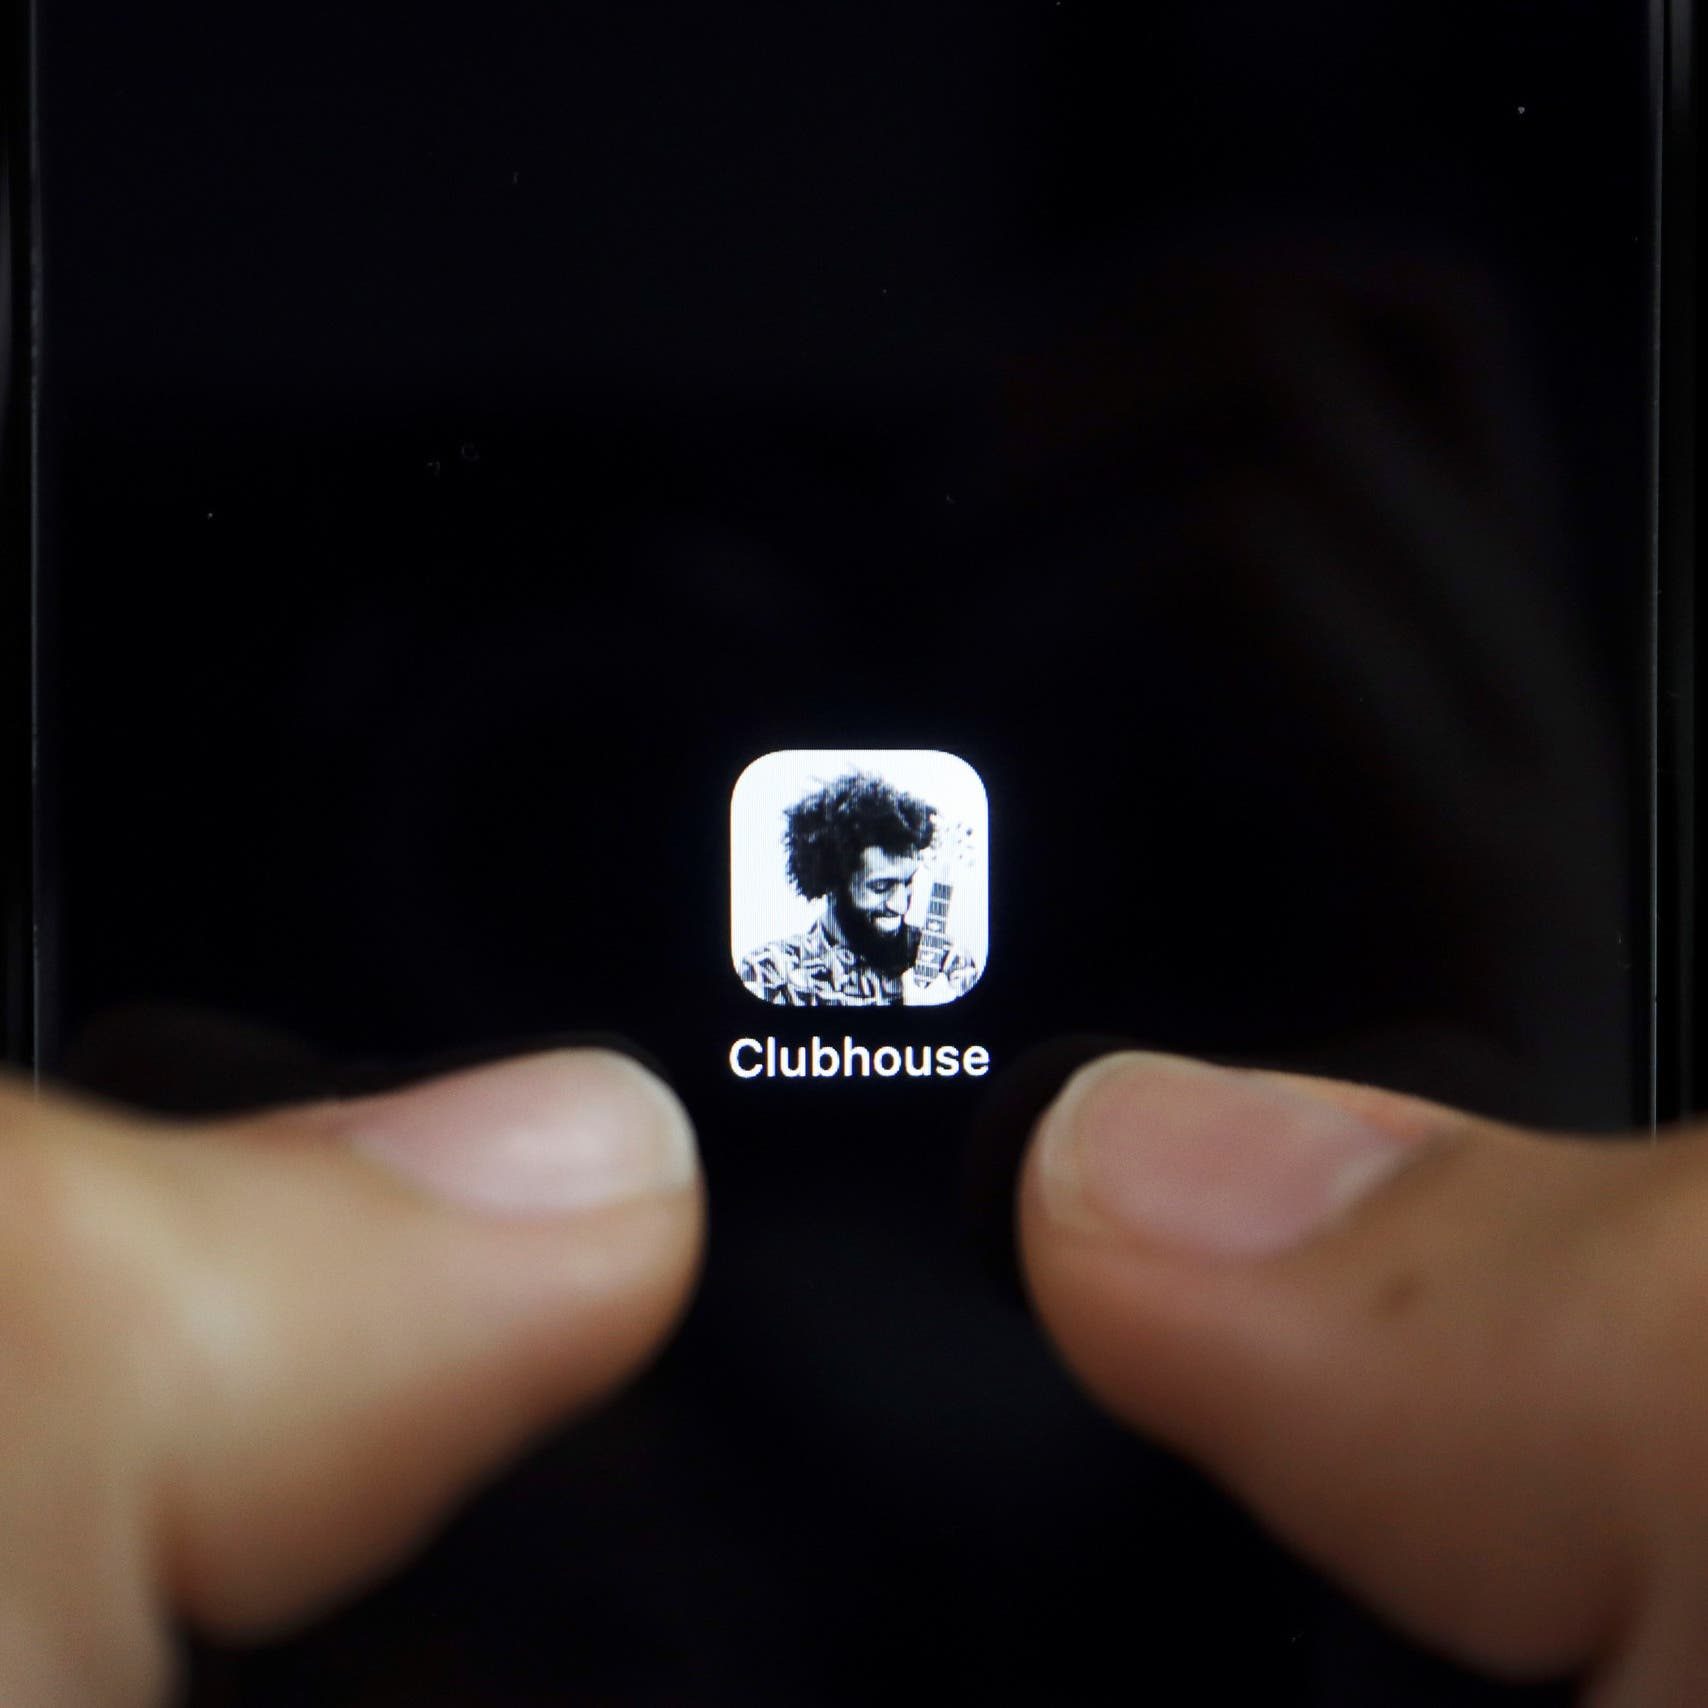 Everything you need to know: What is Clubhouse, the buzzy new audio chat app?